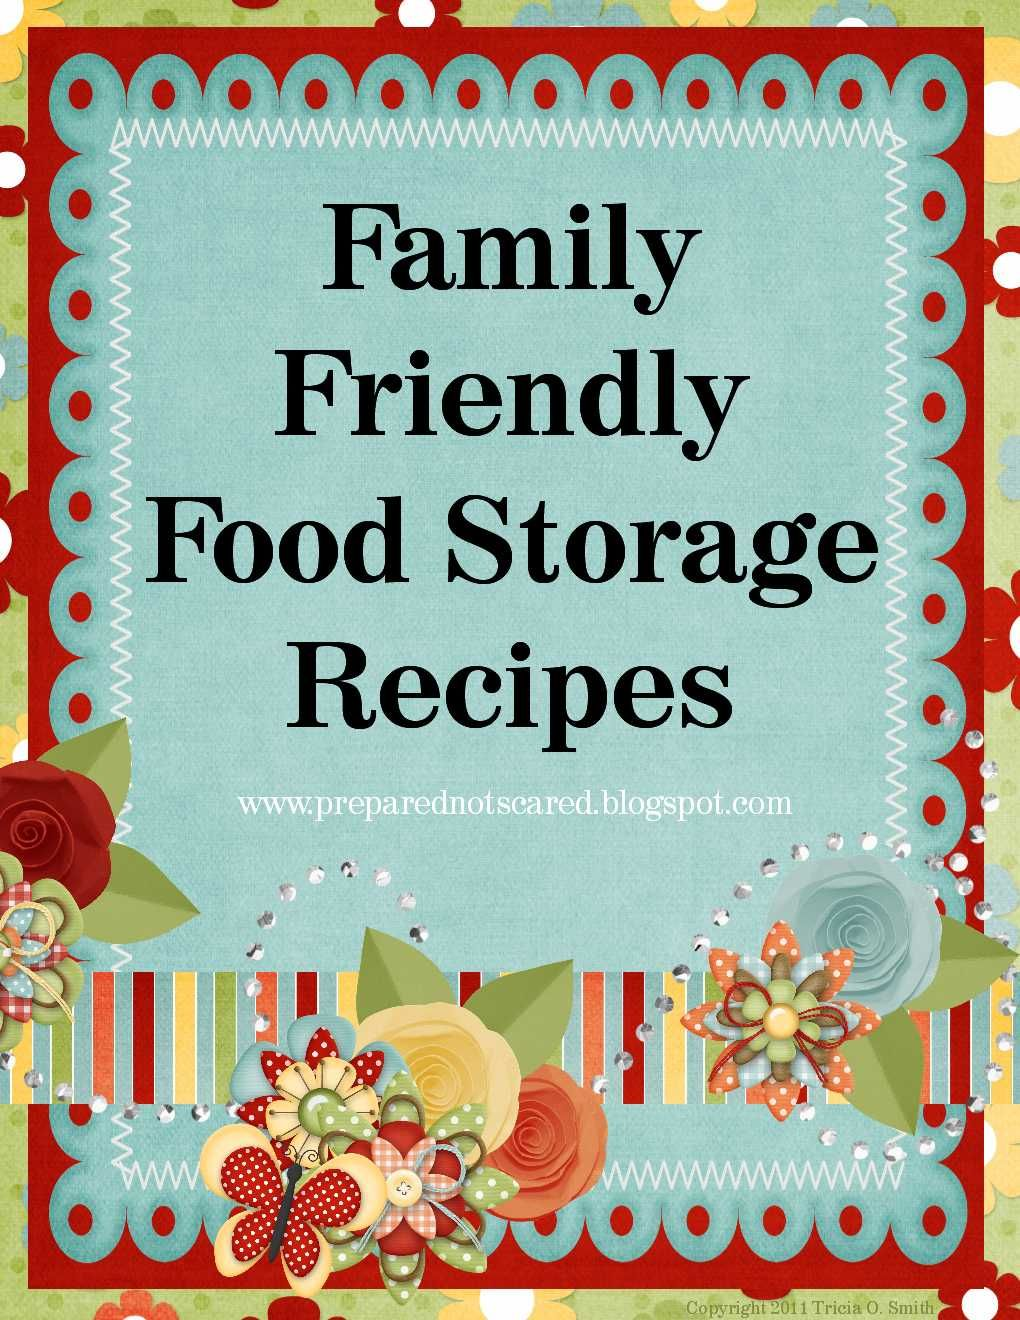 Prepared not scared food storage recipes who knowsyou might food storage recipes forumfinder Images